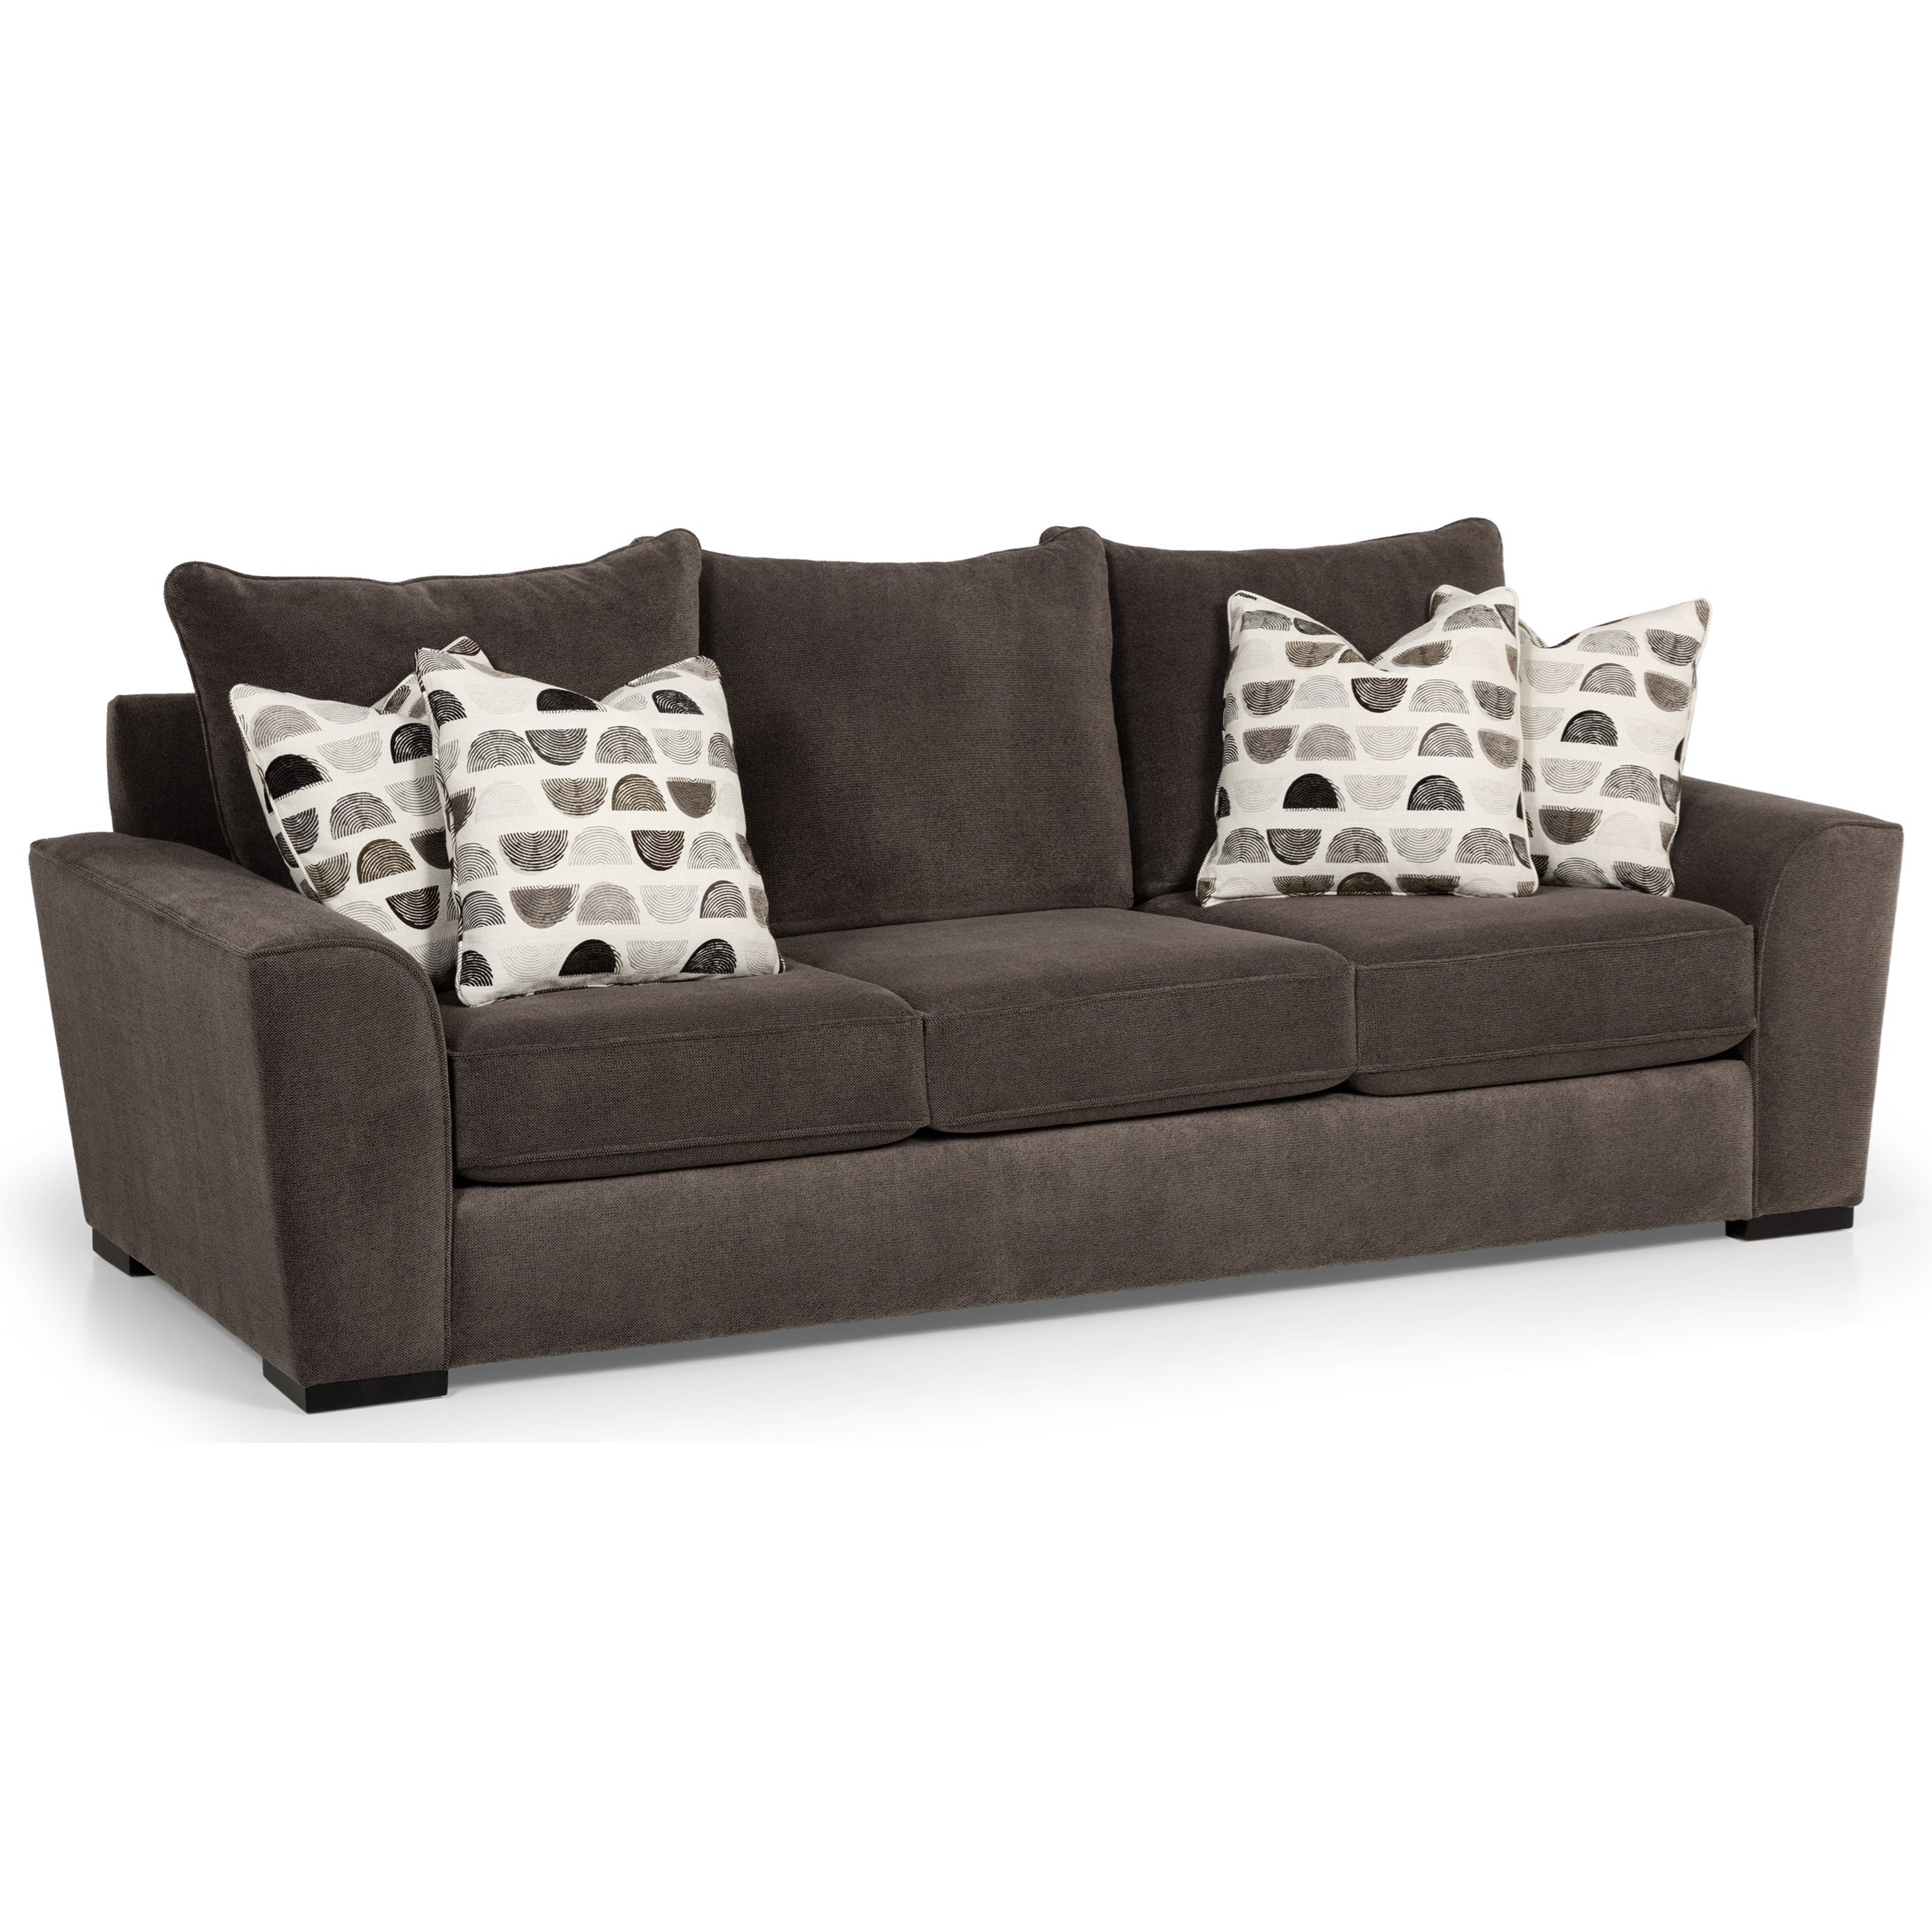 465 Sofa by Stanton at Wilson's Furniture